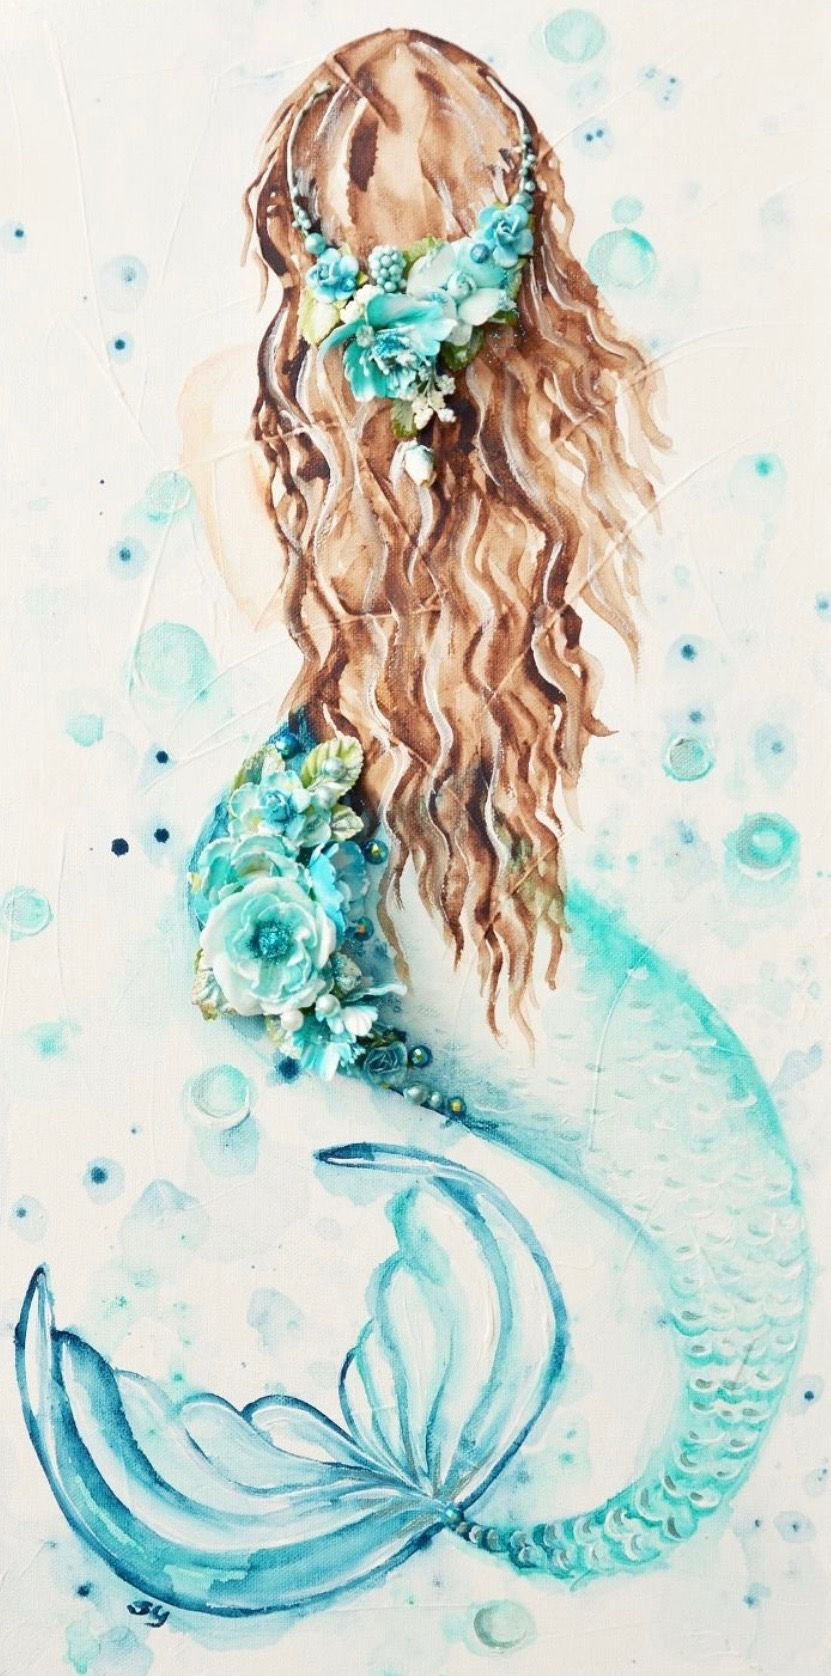 This Mermaid Would Make A Beautiful Painting Like Project On Pallet Slats Mermaid Image Waterslide Mermaid Painting Mermaid Art Mermaid Drawings